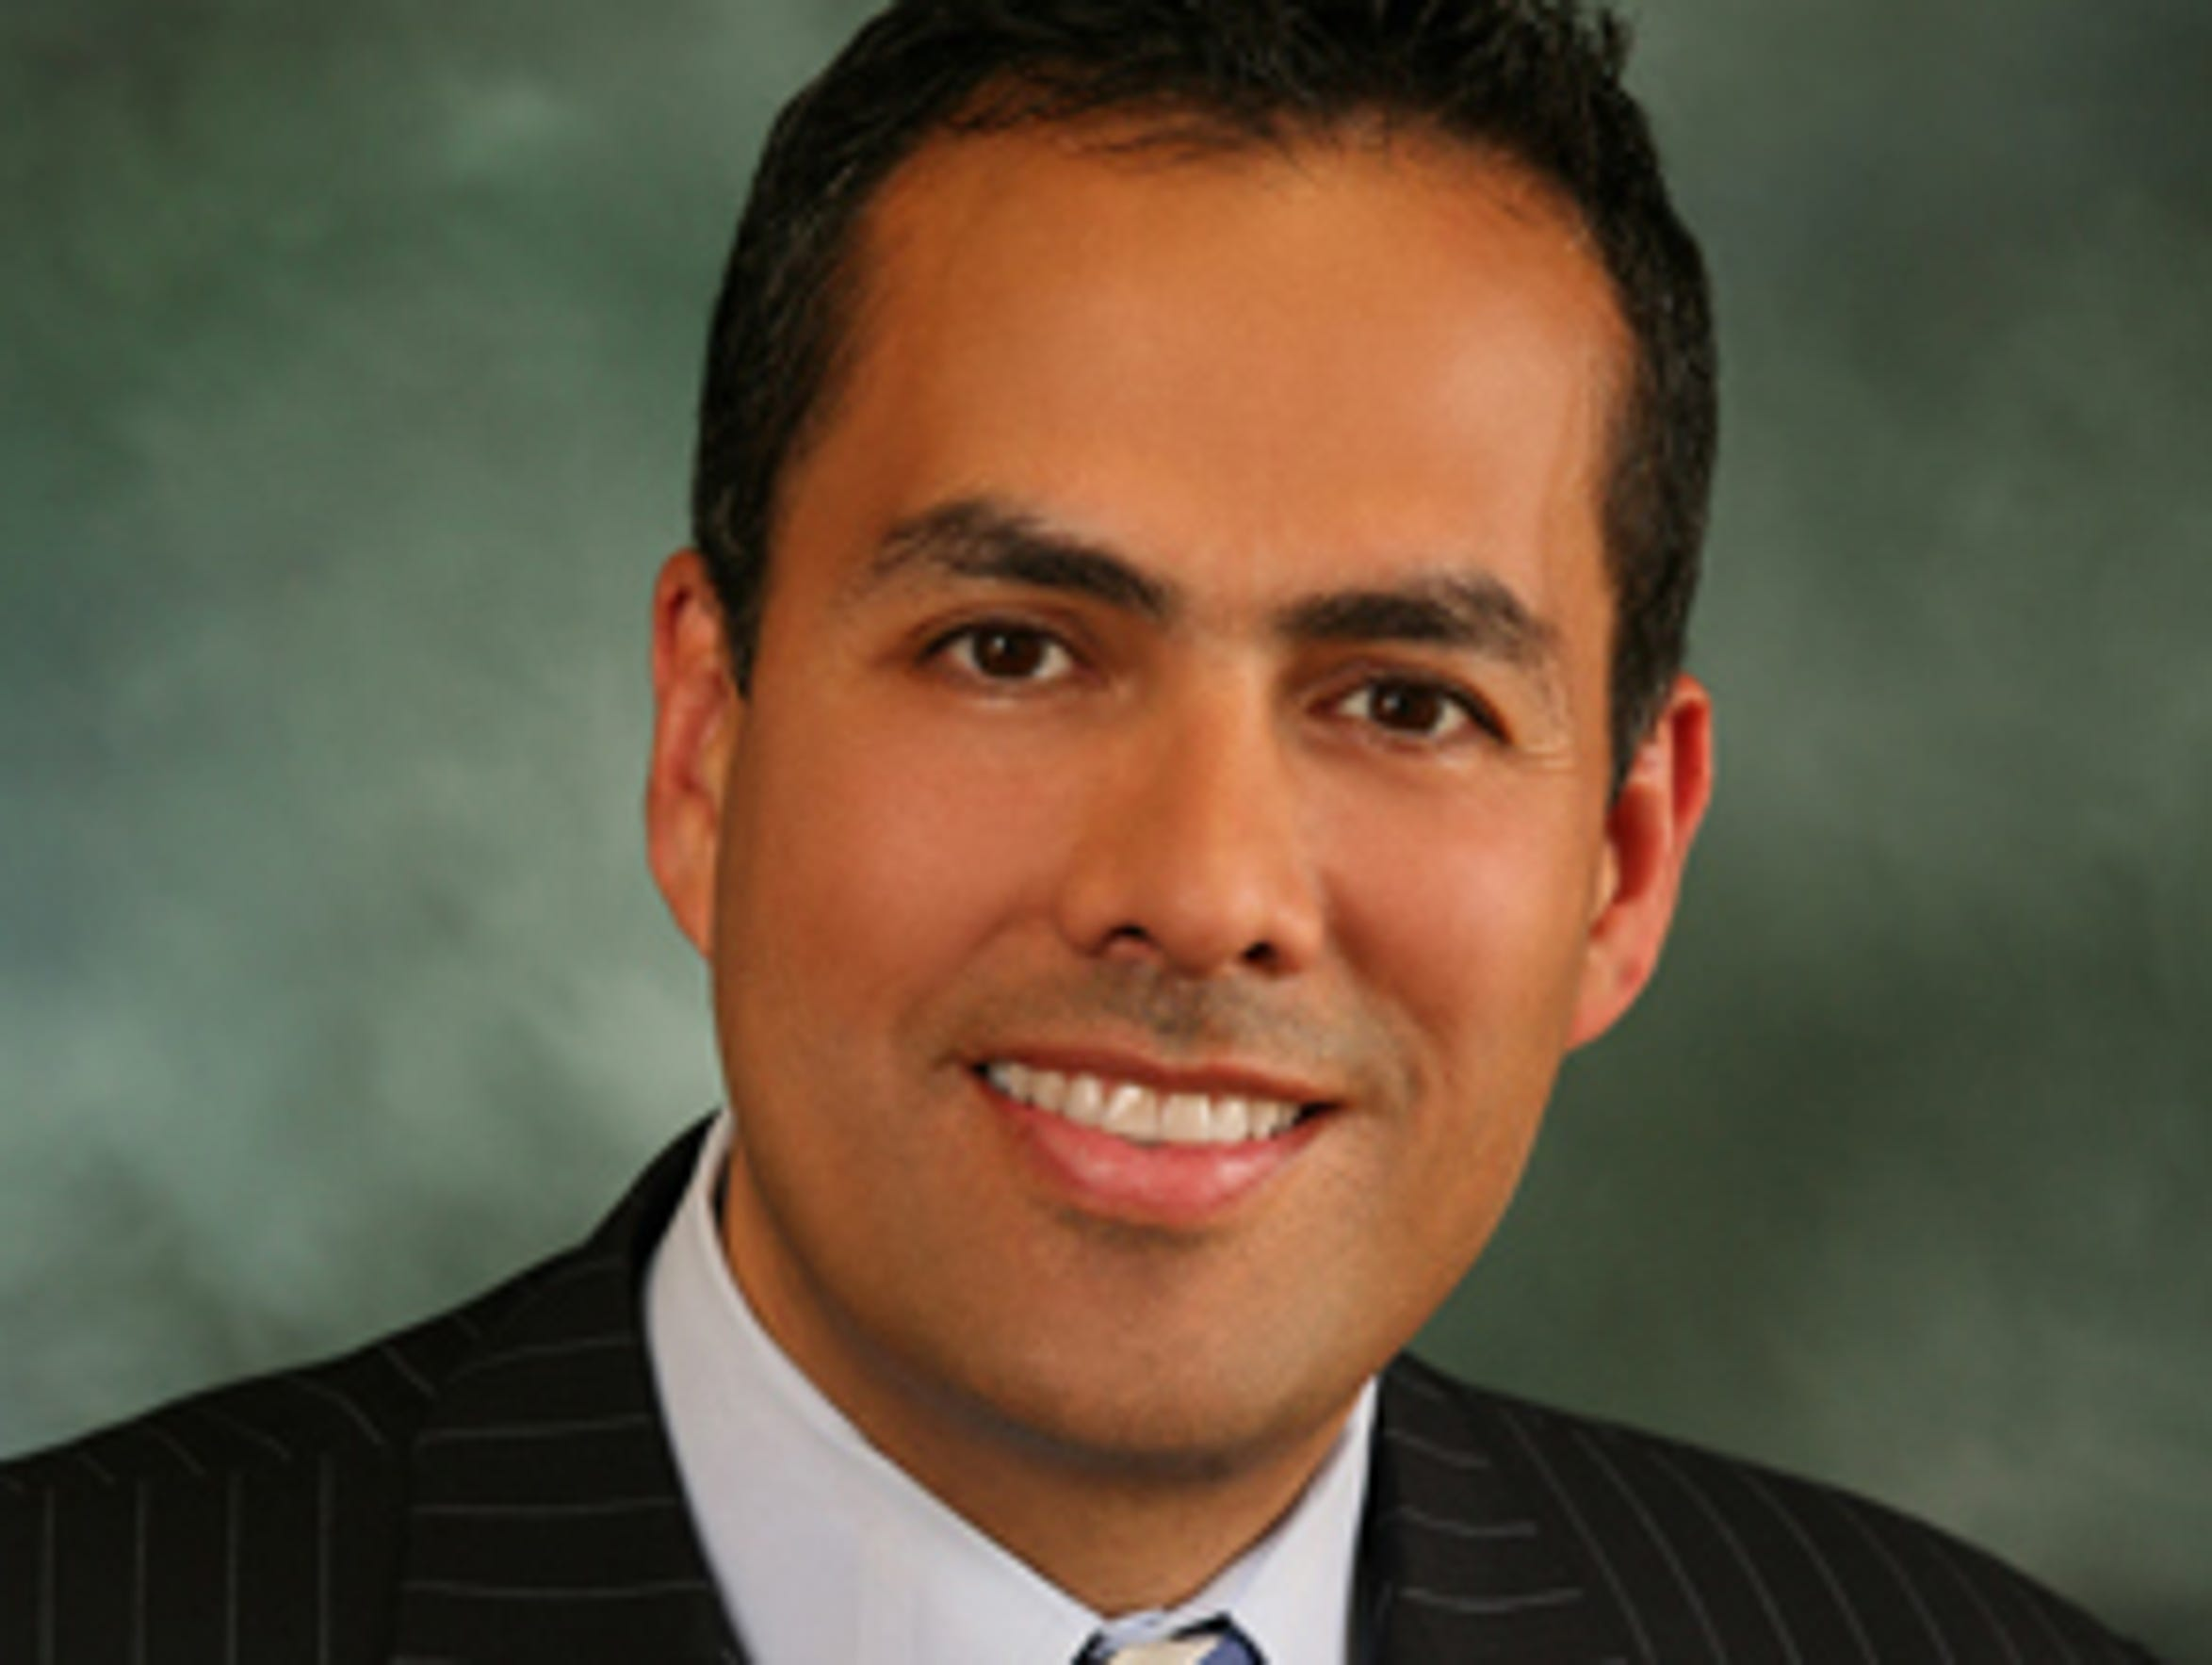 El Paso City Manager Tommy Gonzalez approved installing